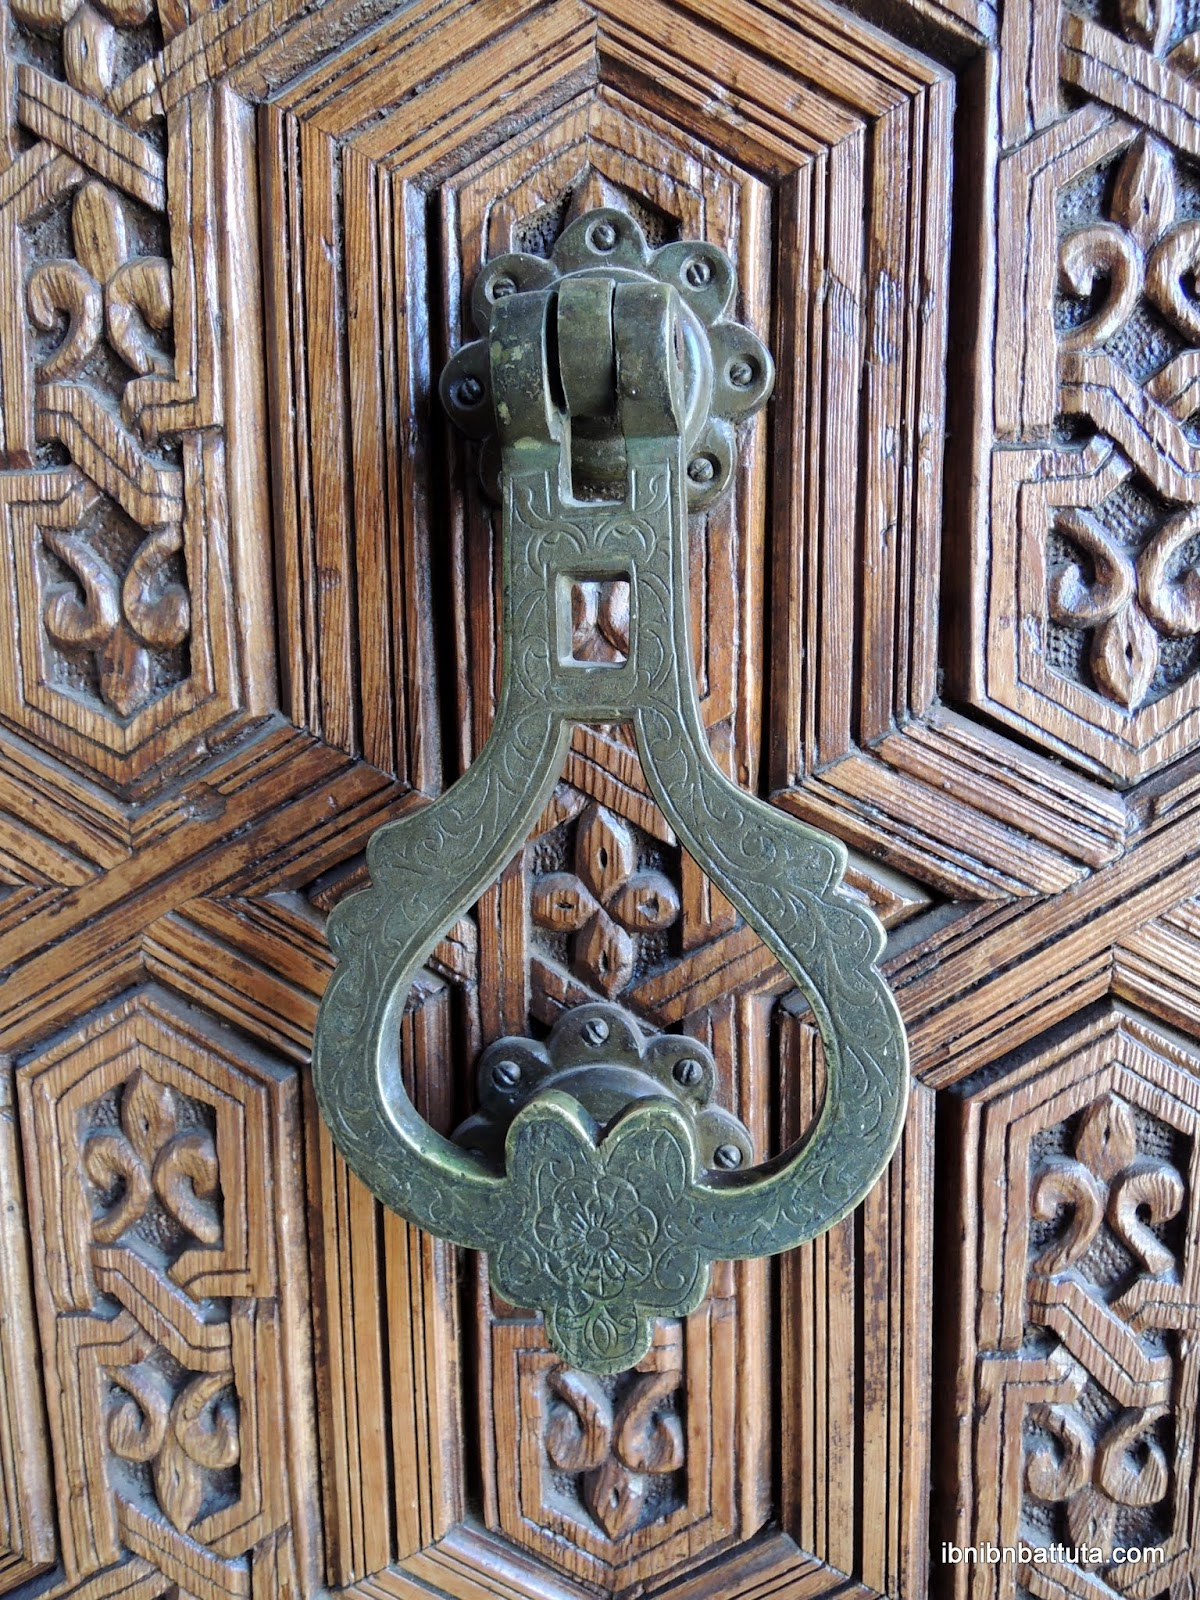 Handcrafted door knocker, Museum of Marrakech